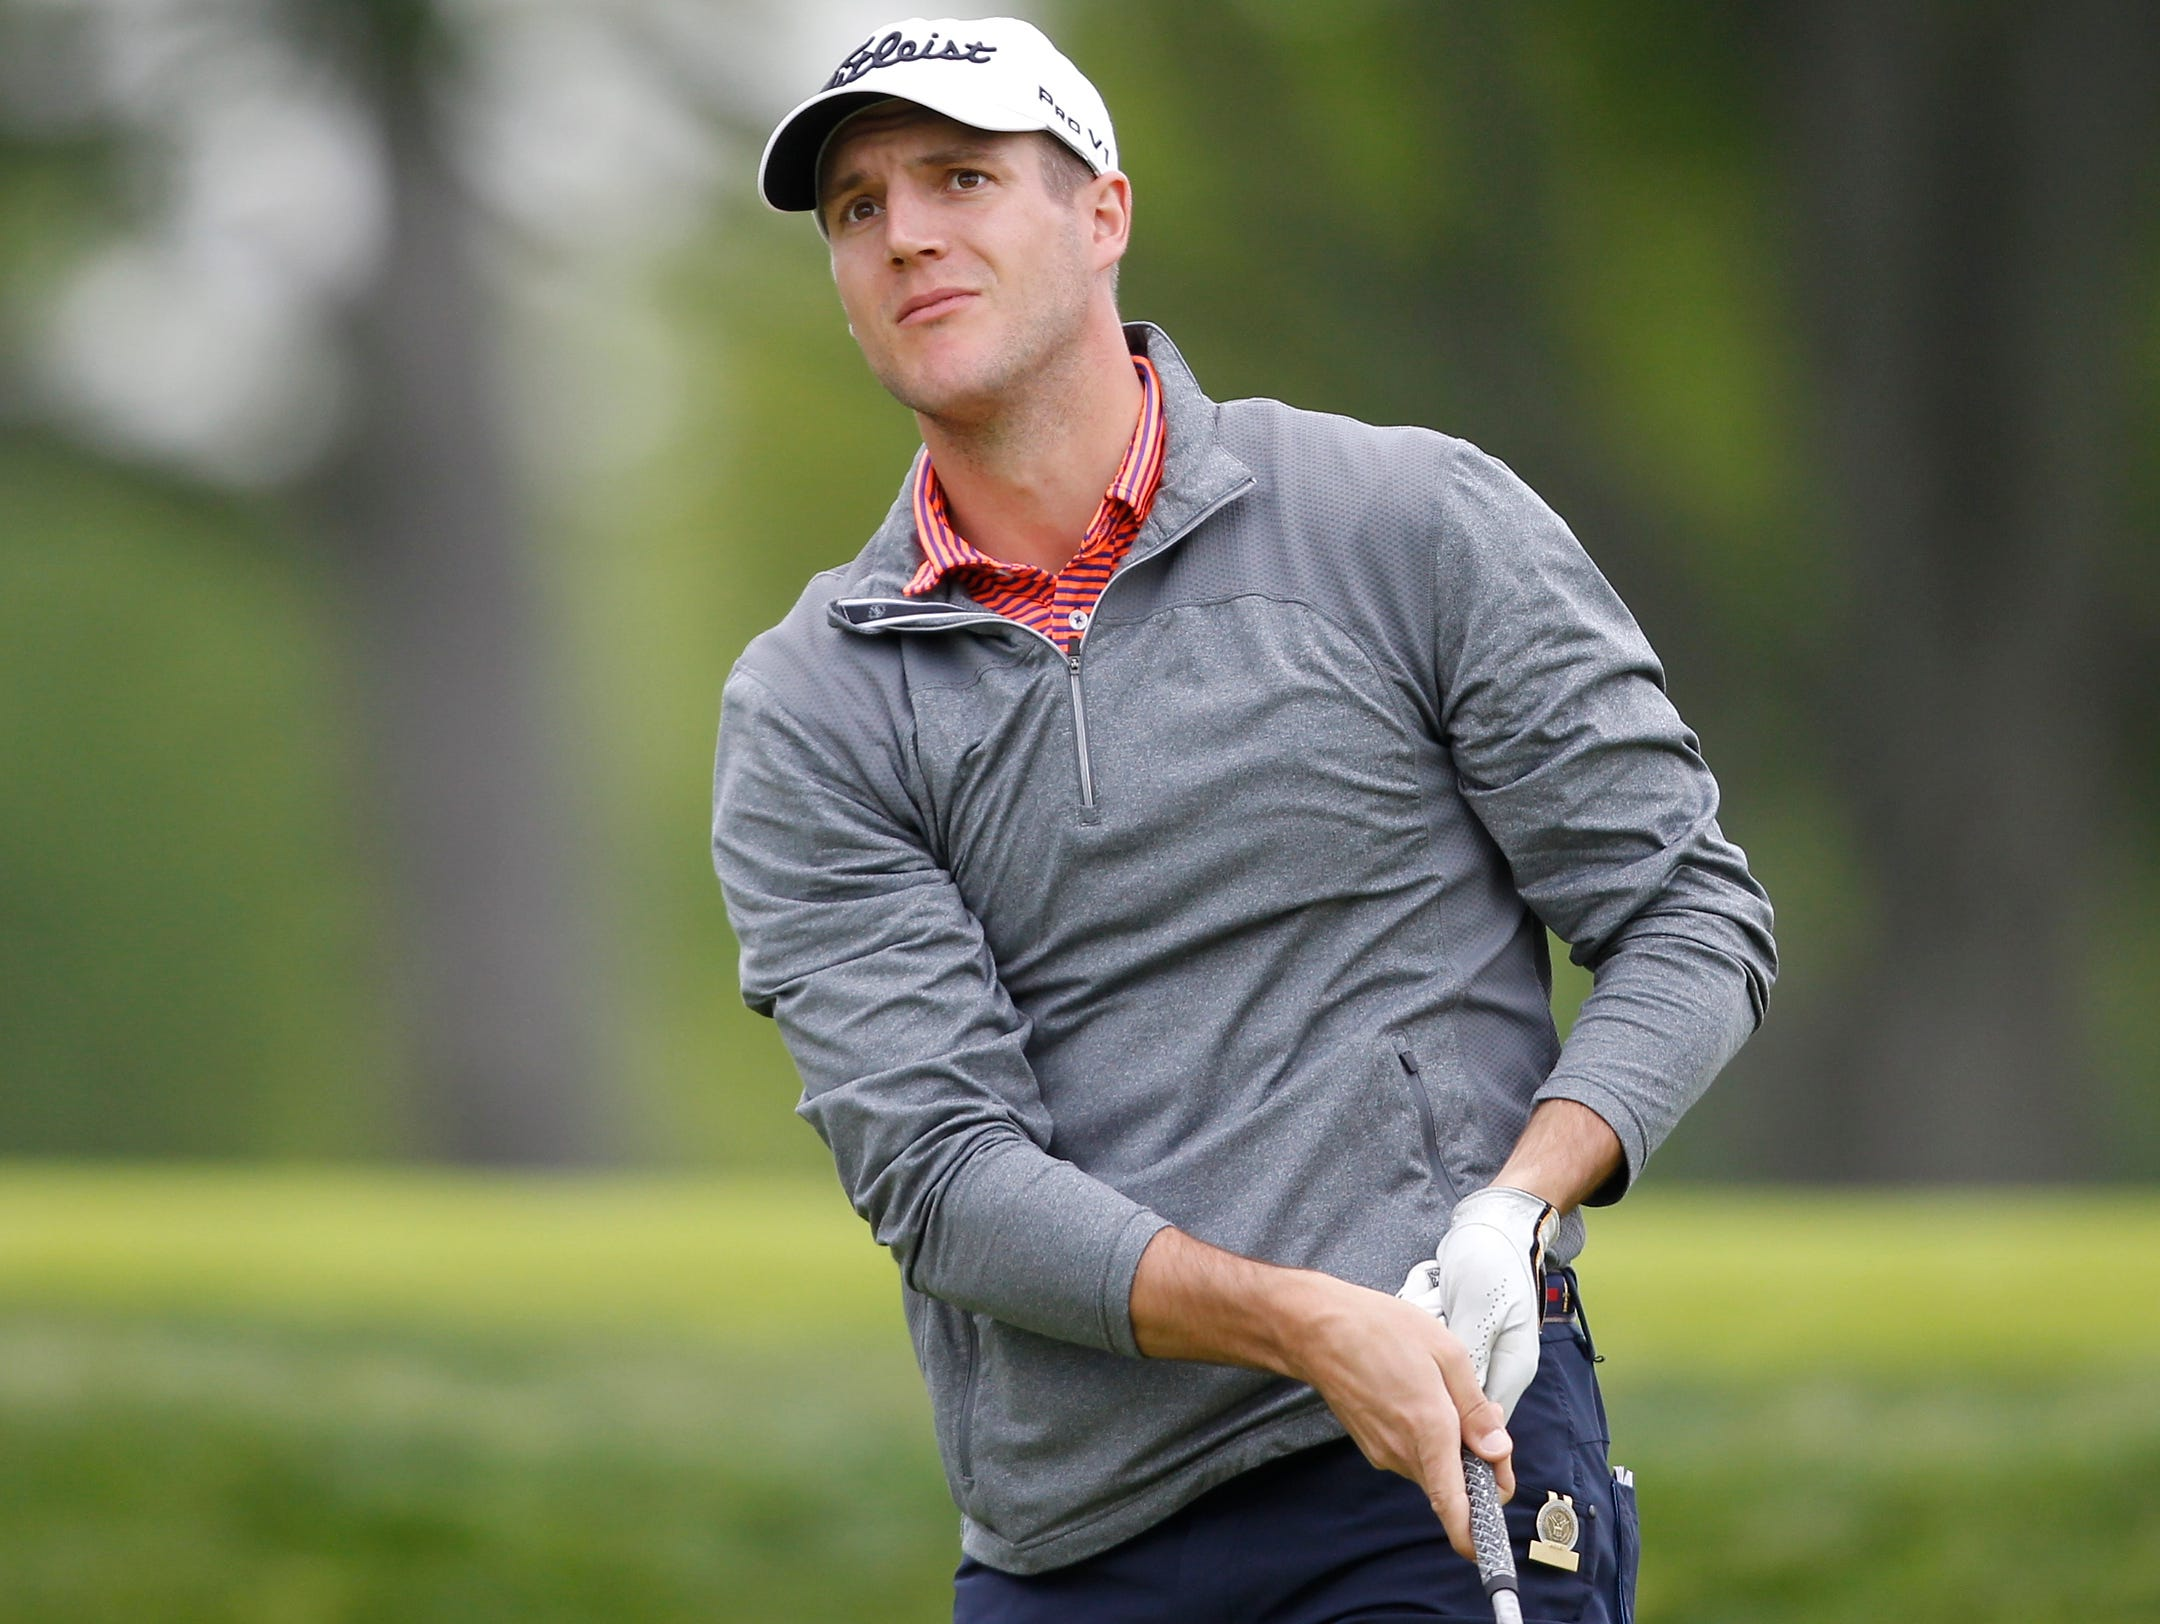 Garrett Rank from Canada hits his tee shot to the 9th hole at the first round of the 2016 U. S. Amateur Four-Ball Championship at Winged Foot Golf Club in Mamaroneck on Saturday, May 21, 2016.